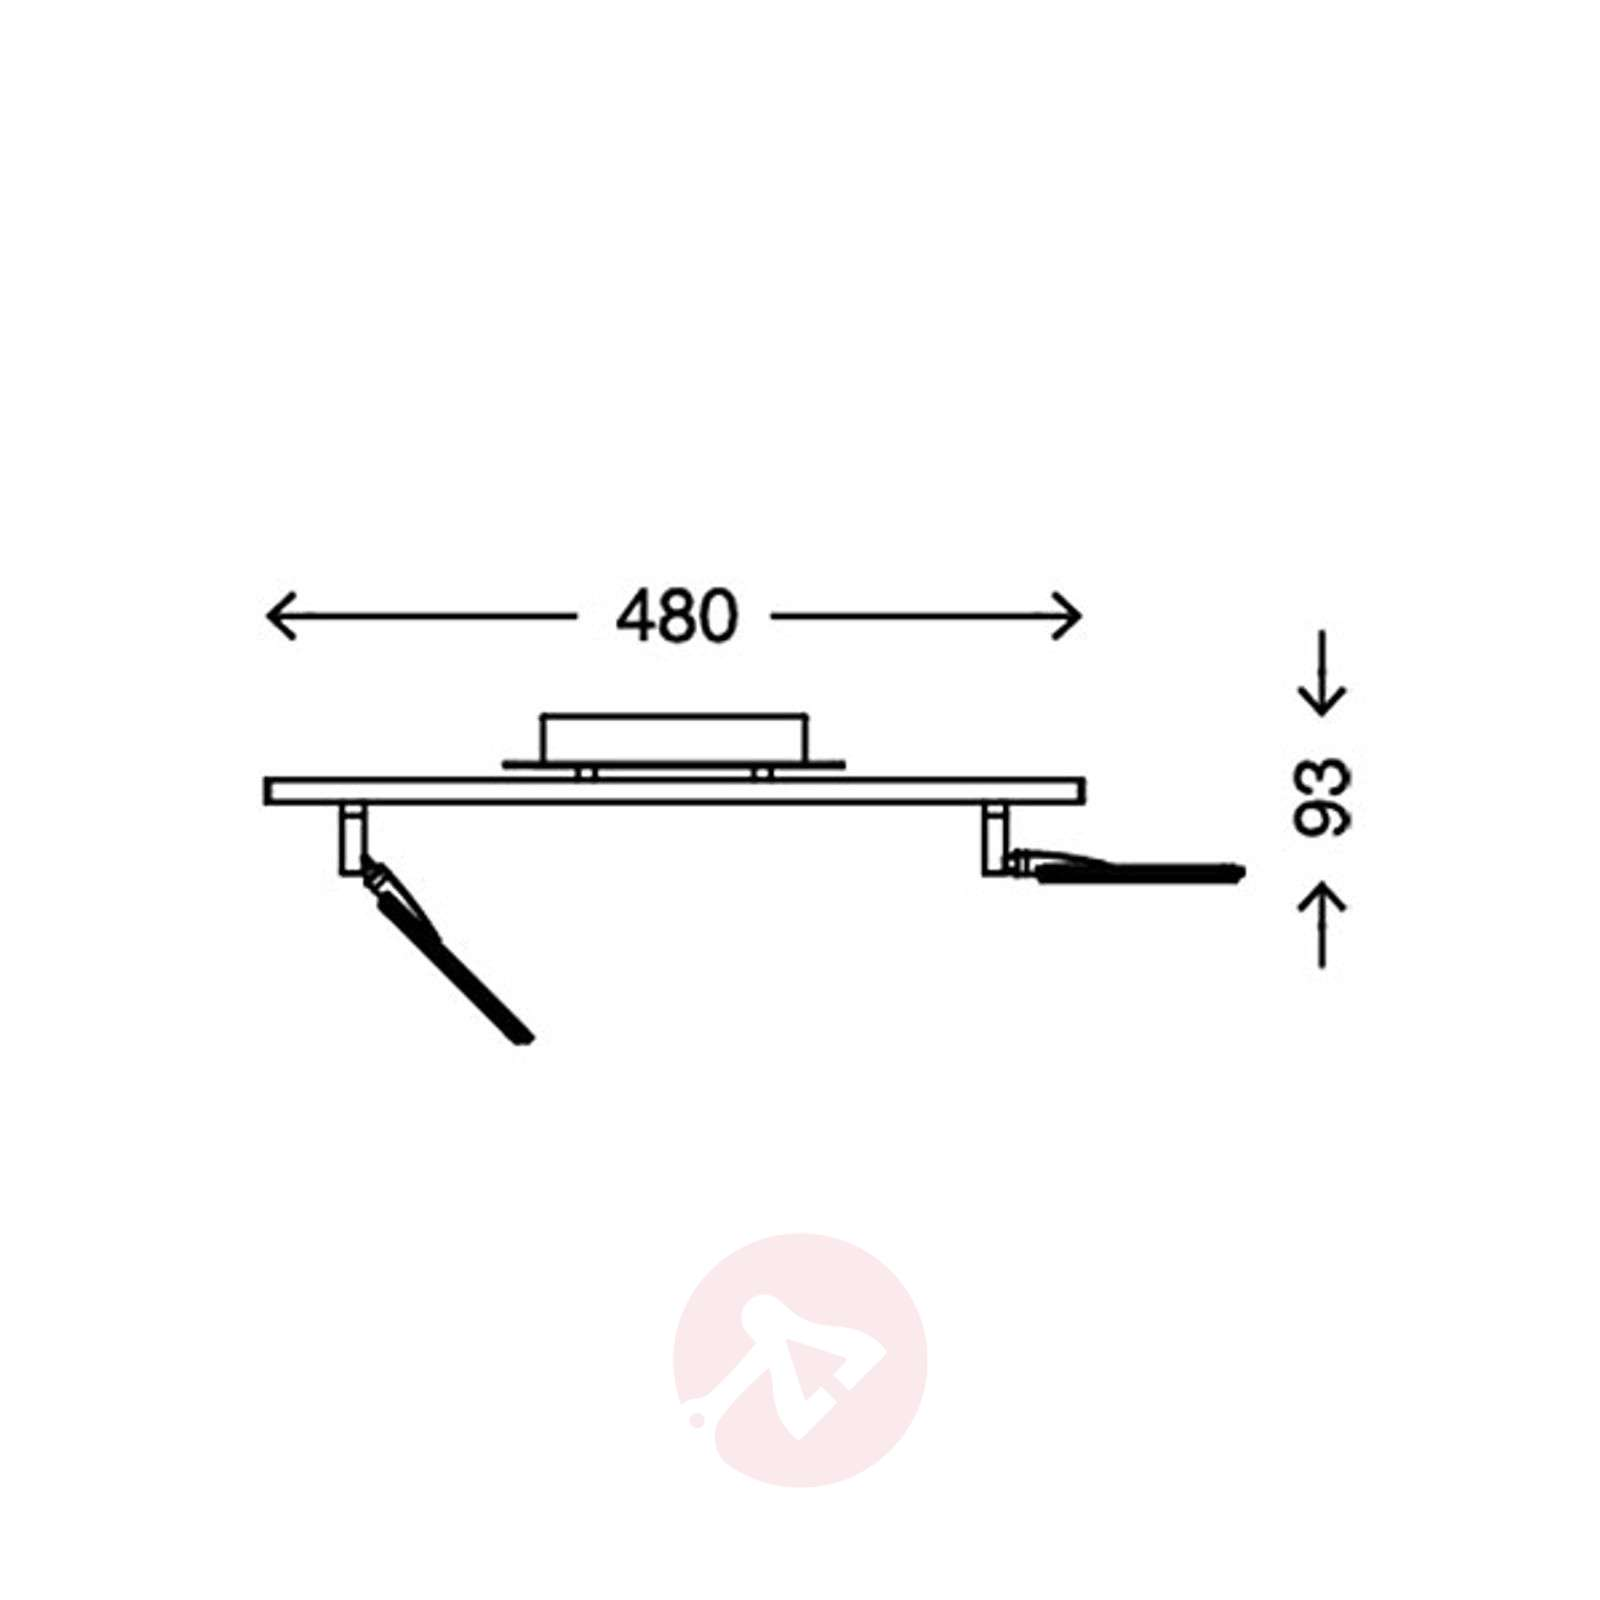 Led Ceiling Light Quadra Dimmable Two Bulb Wiring Diagram 1510302 01